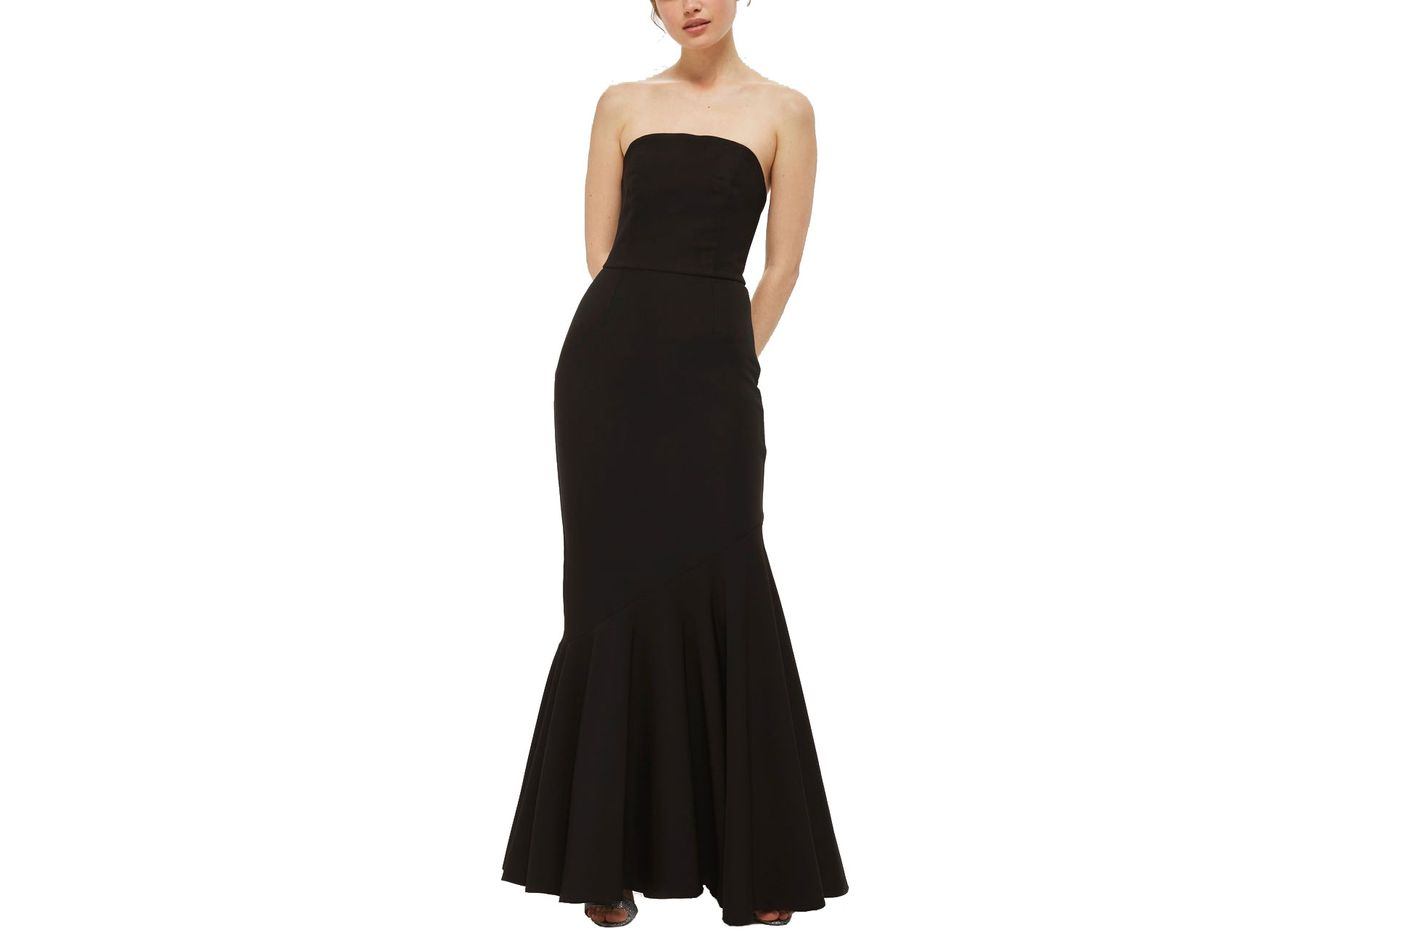 Dresses To Wear To A Spring Wedding 70 Good Think of this dress